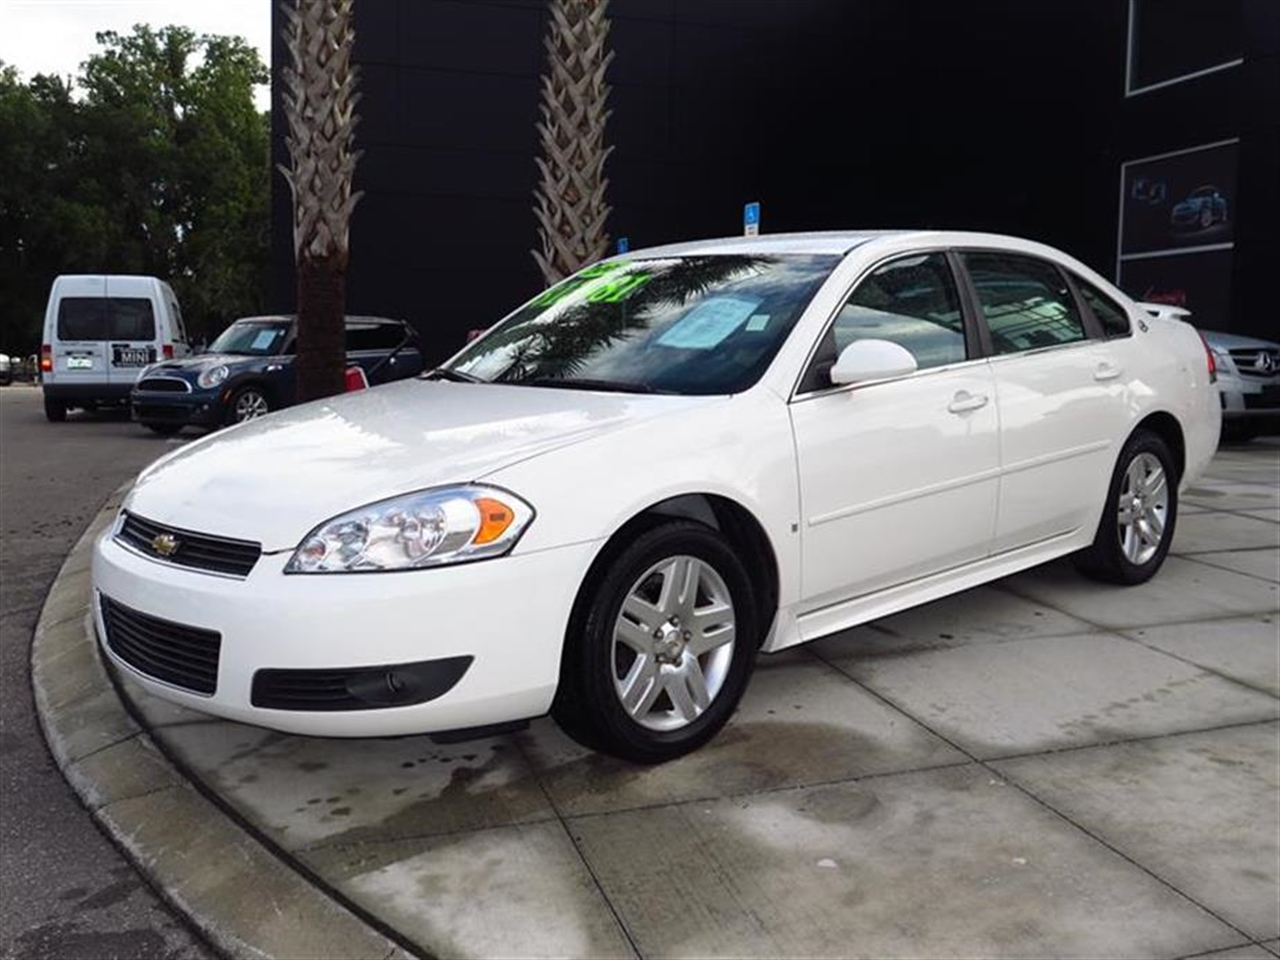 2009 CHEVROLET IMPALA 4dr Sdn 39L LT 51773 miles Air conditioning dual-zone manual climate contr